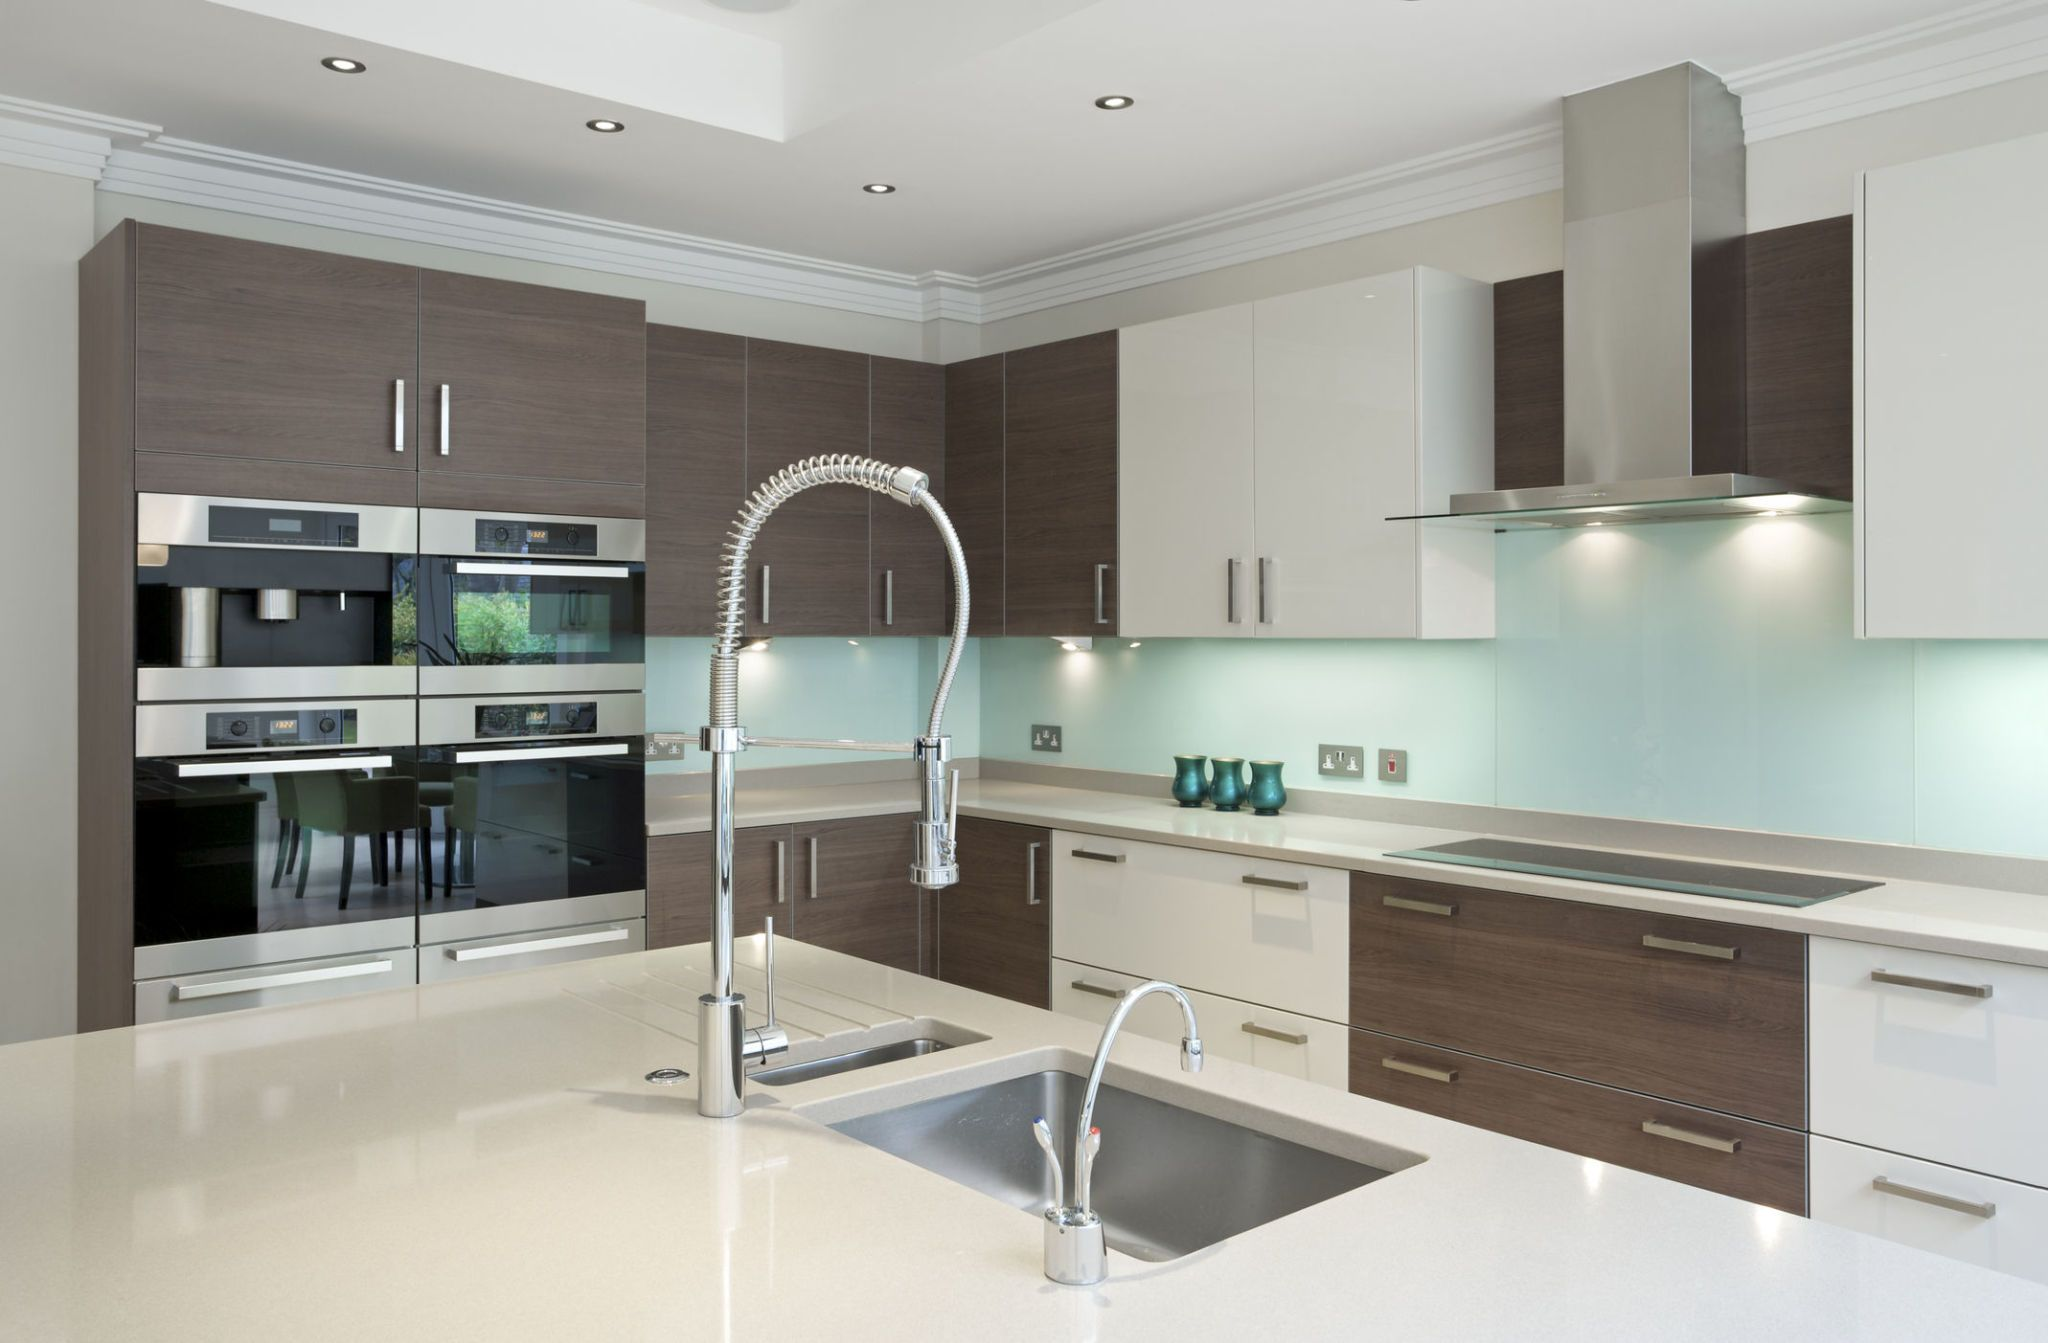 how to decorate your kitchen the honest com trends colour scheme and style modern interior with two tone design